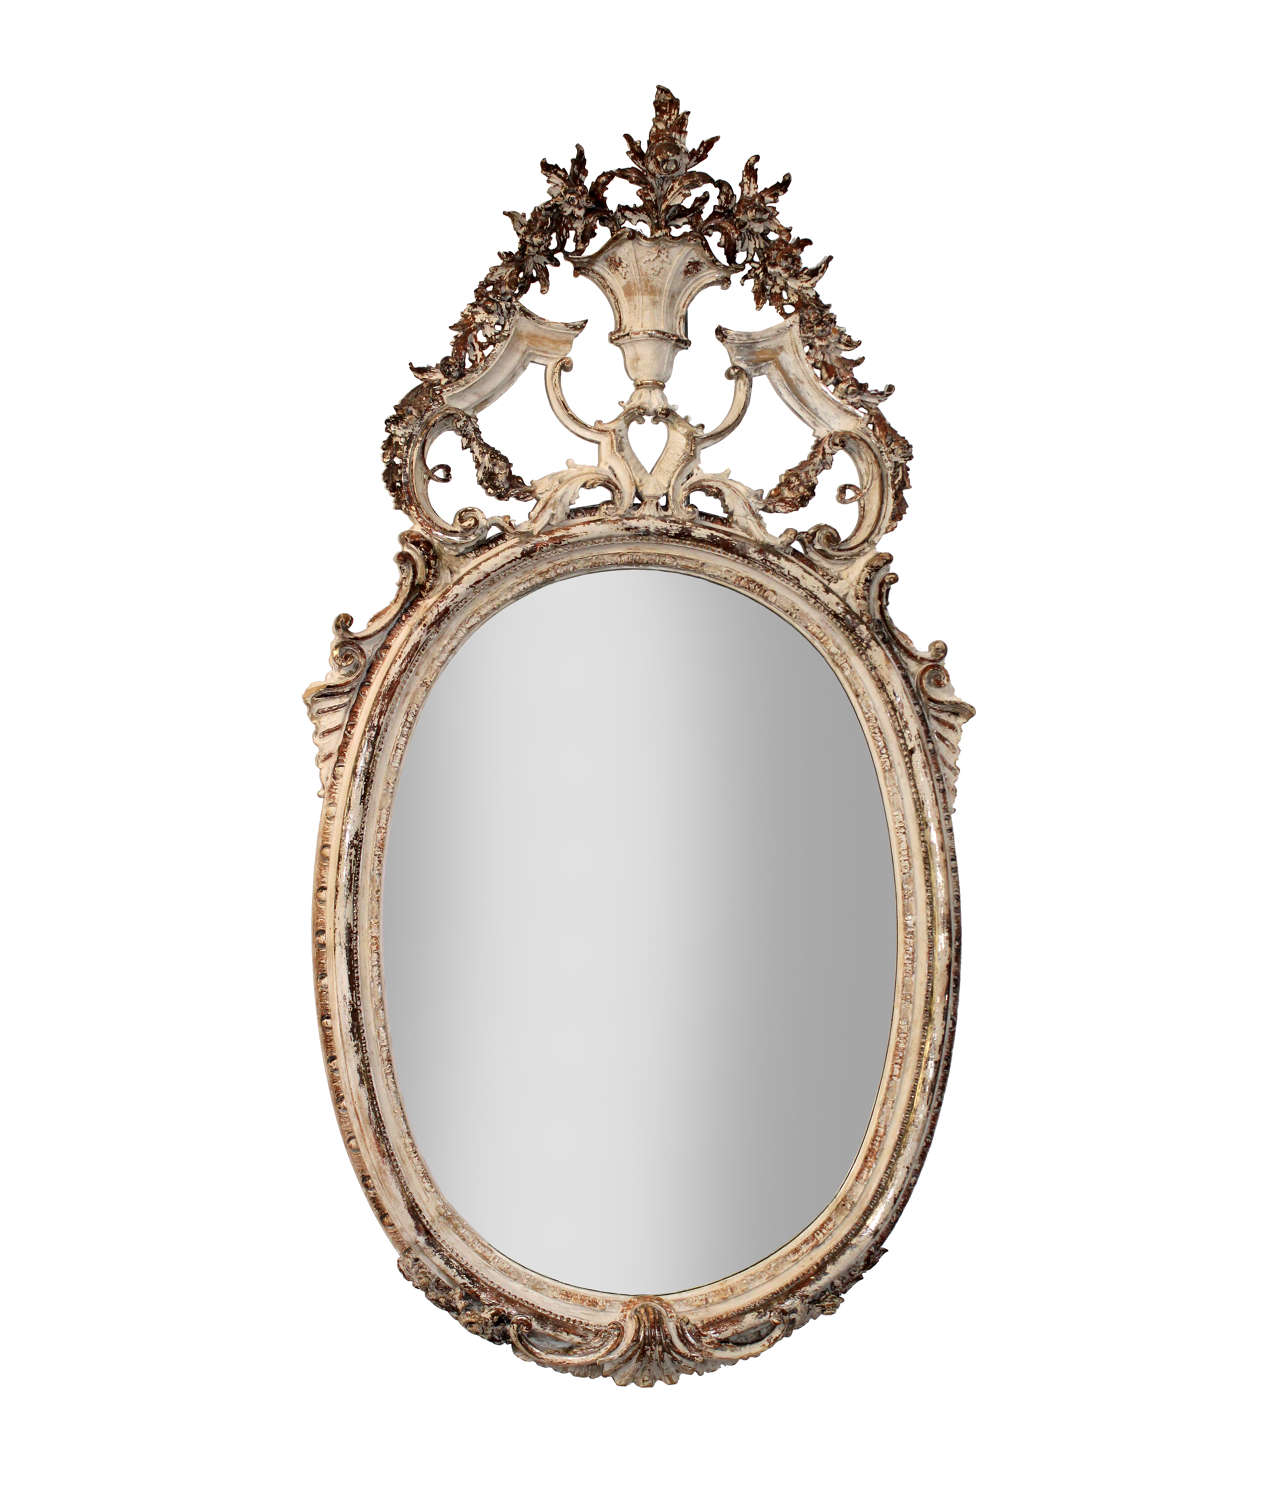 Spectacular large antique Spanish mirror